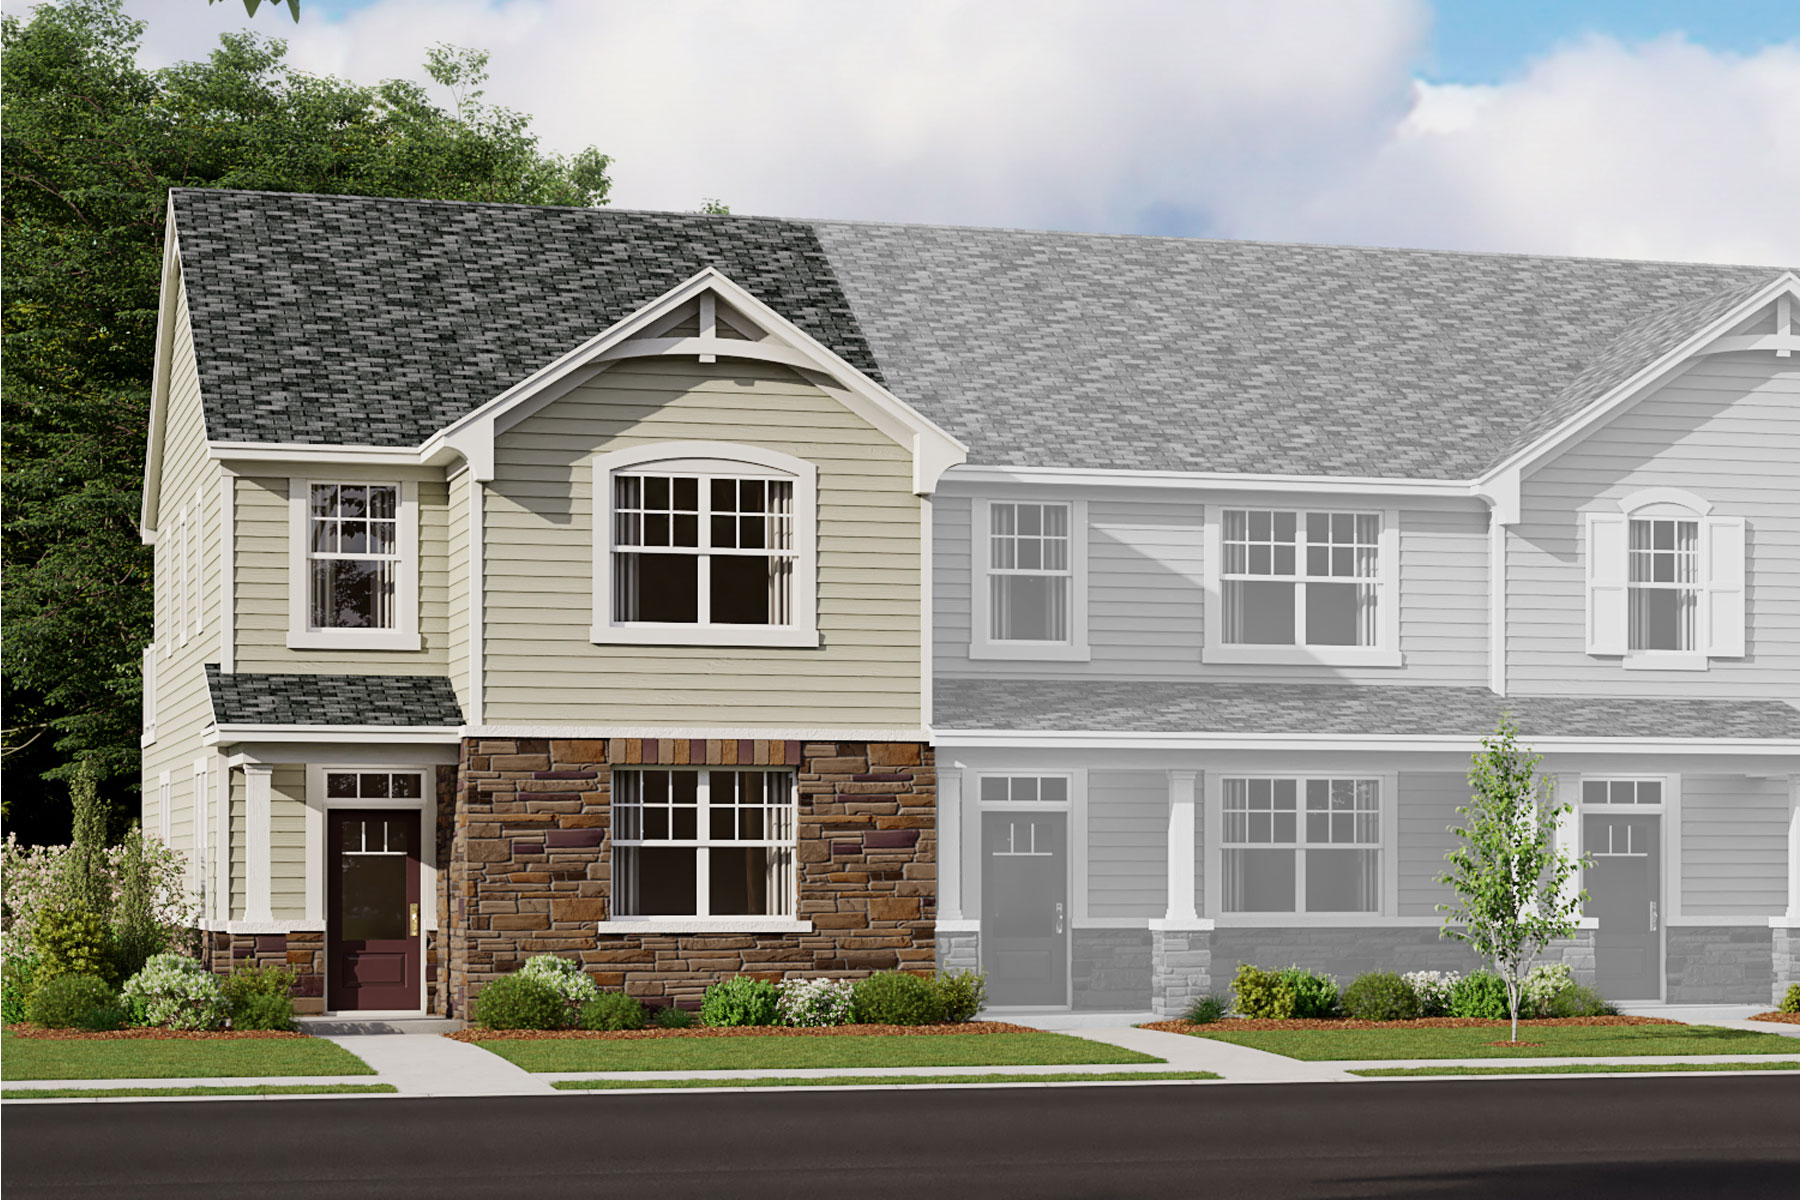 Owen Plan TownHomes at Porter's Row in Charlotte North Carolina by Mattamy Homes